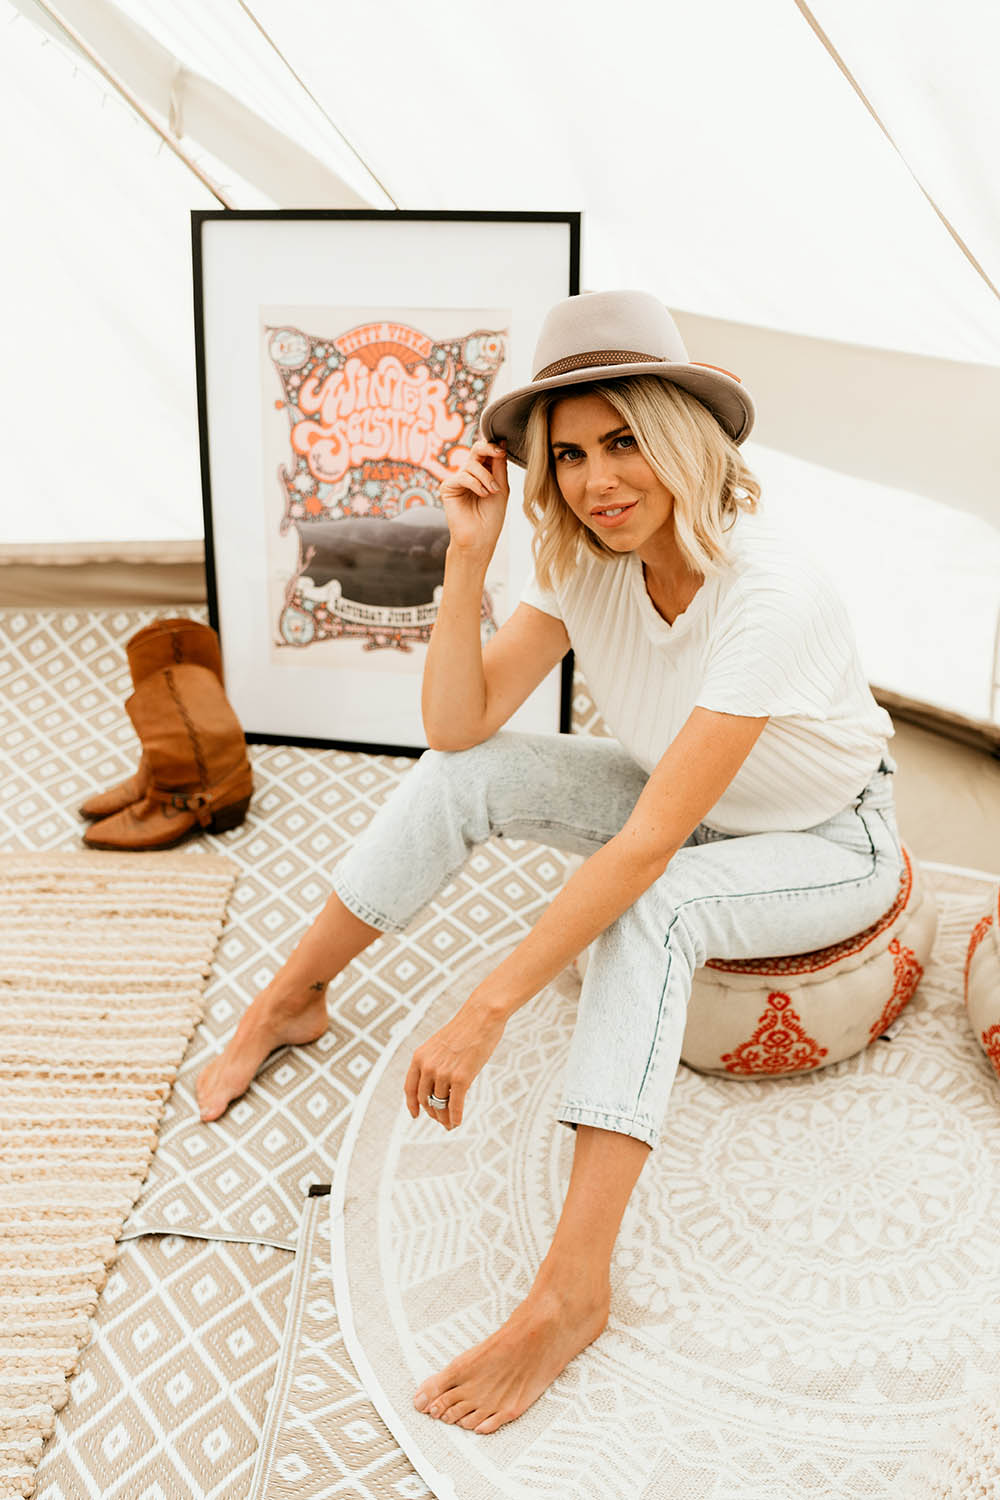 Model sitting on a cushion holding her hat - Business branding photography - Nambucca valley photographer - Lifestyle photographer - Bellingen photographer - Coffs coast photographer